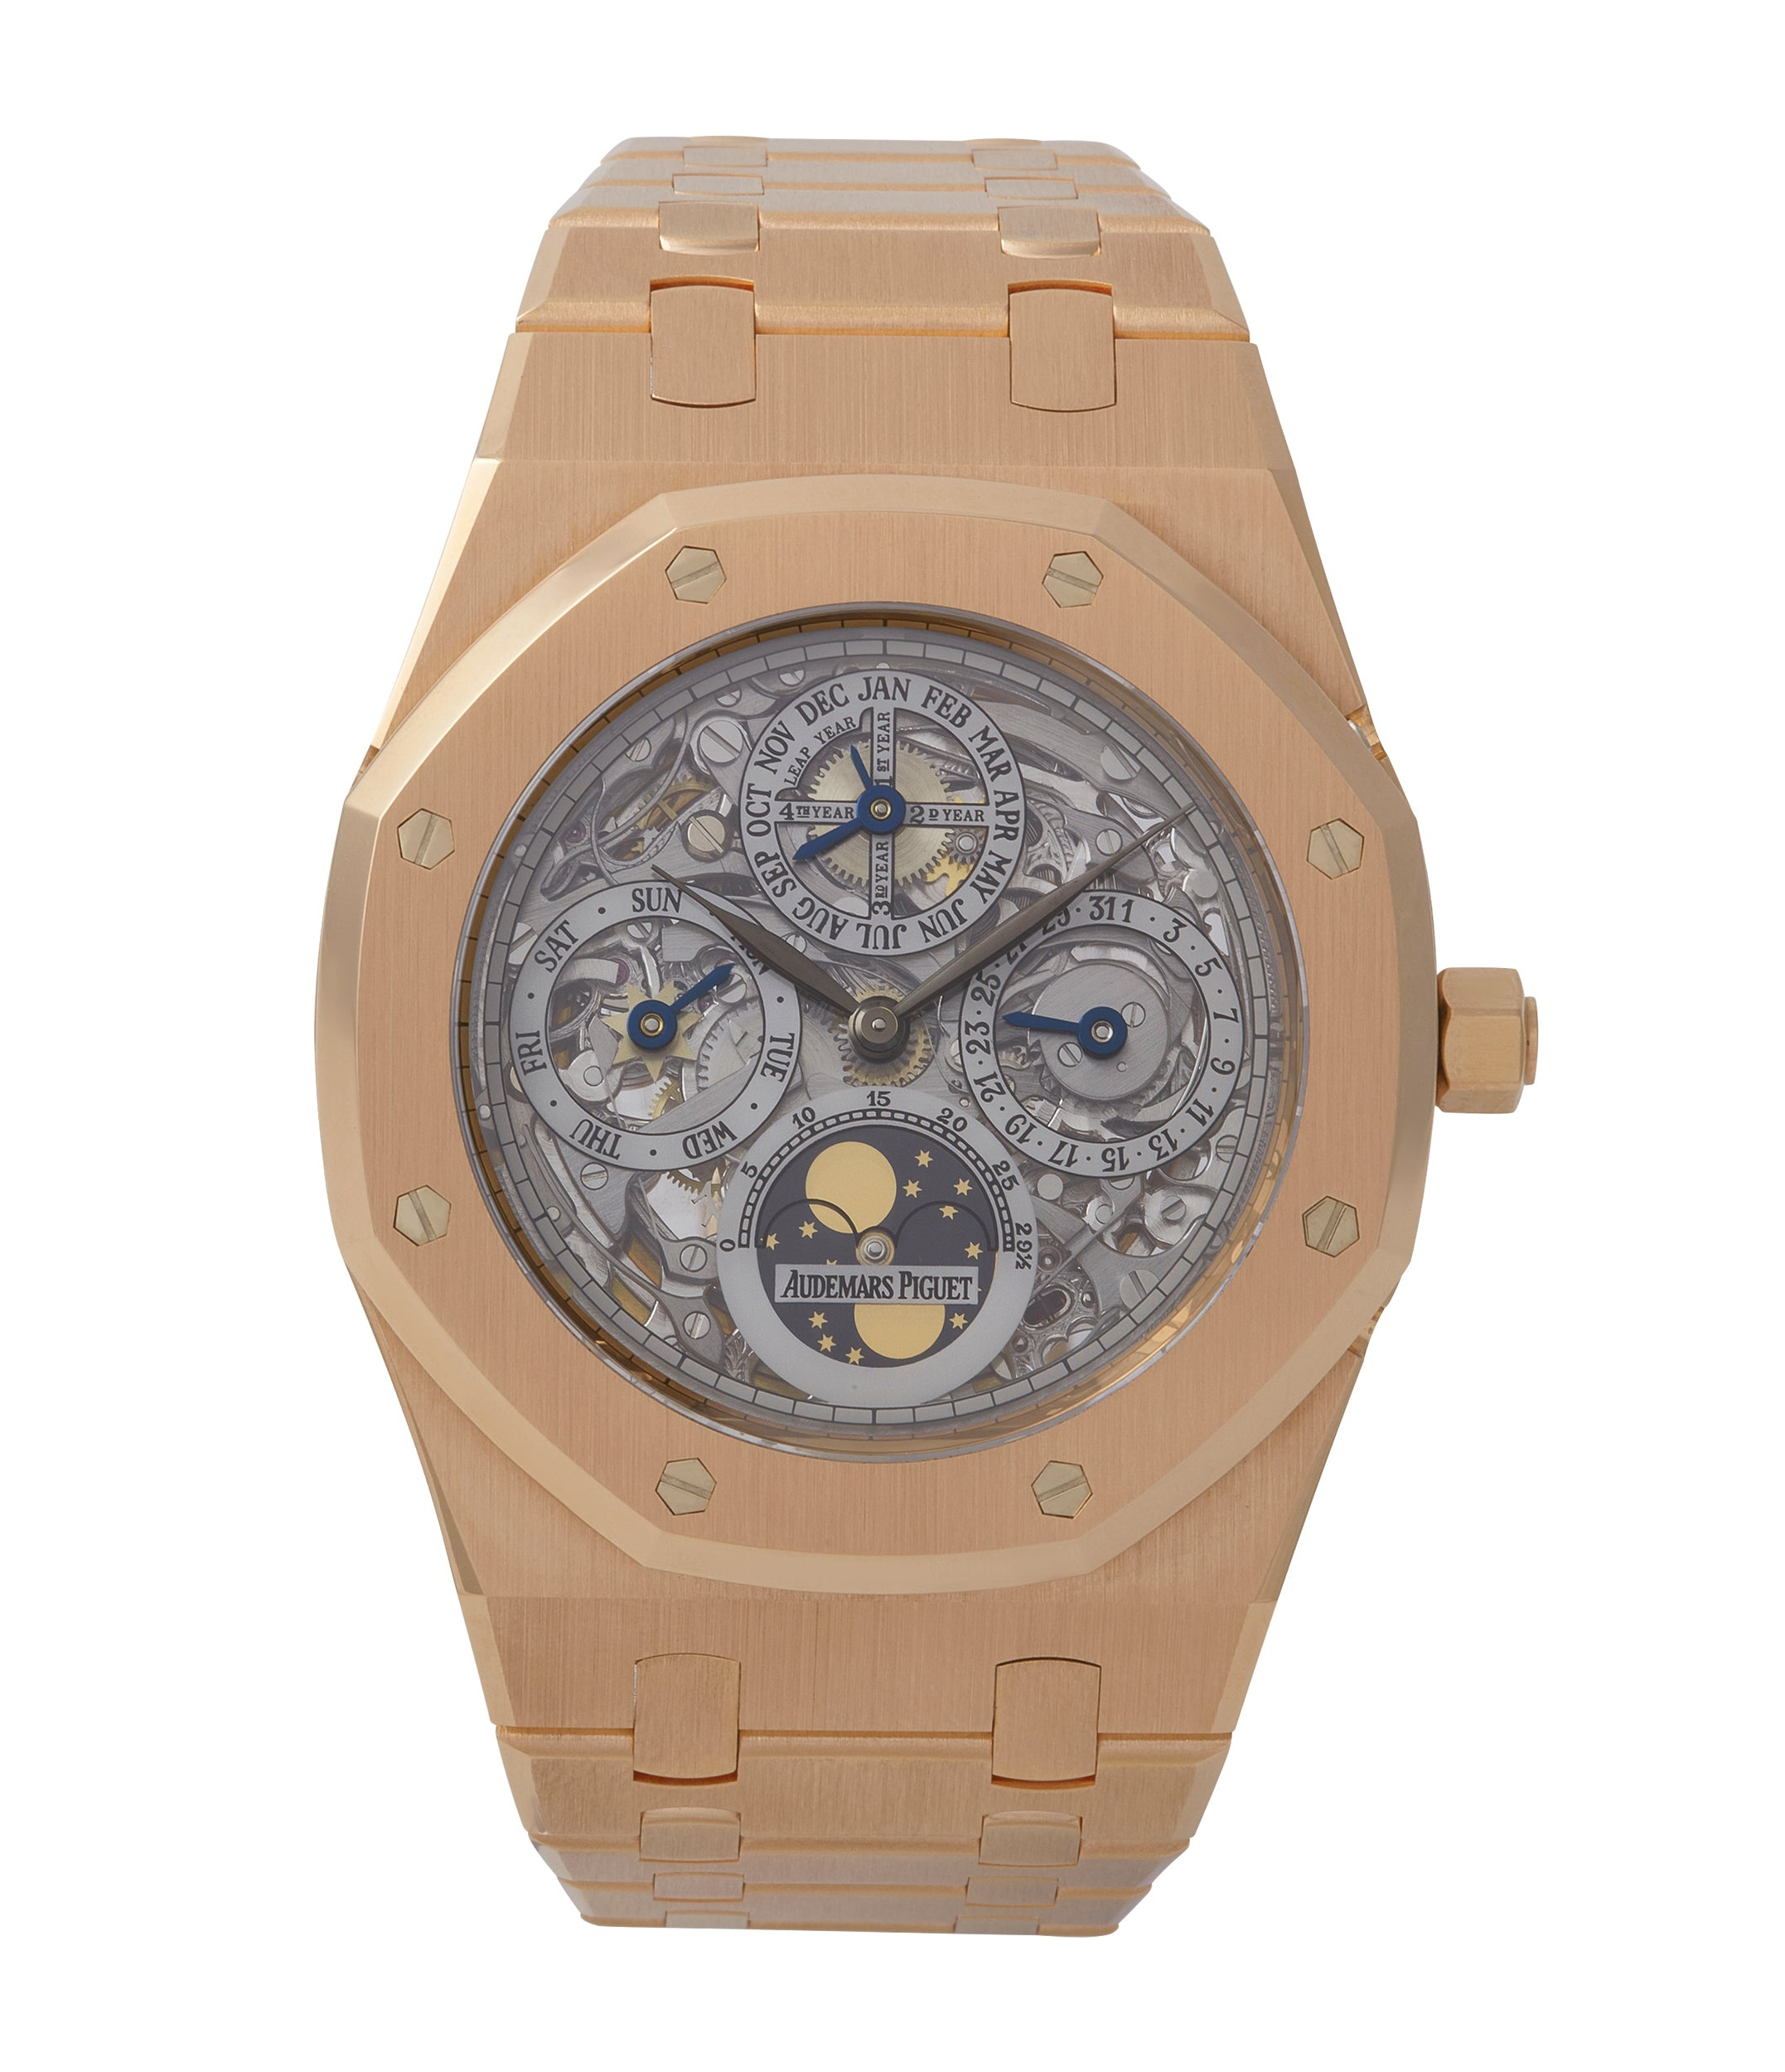 buy Audemars Piguet Royal Oak Quantieme Perpetual Calendar 25829OR rose gold skeletonised pre-owned sport watch for sale online at A Collected Man London UK specialist of rare watches